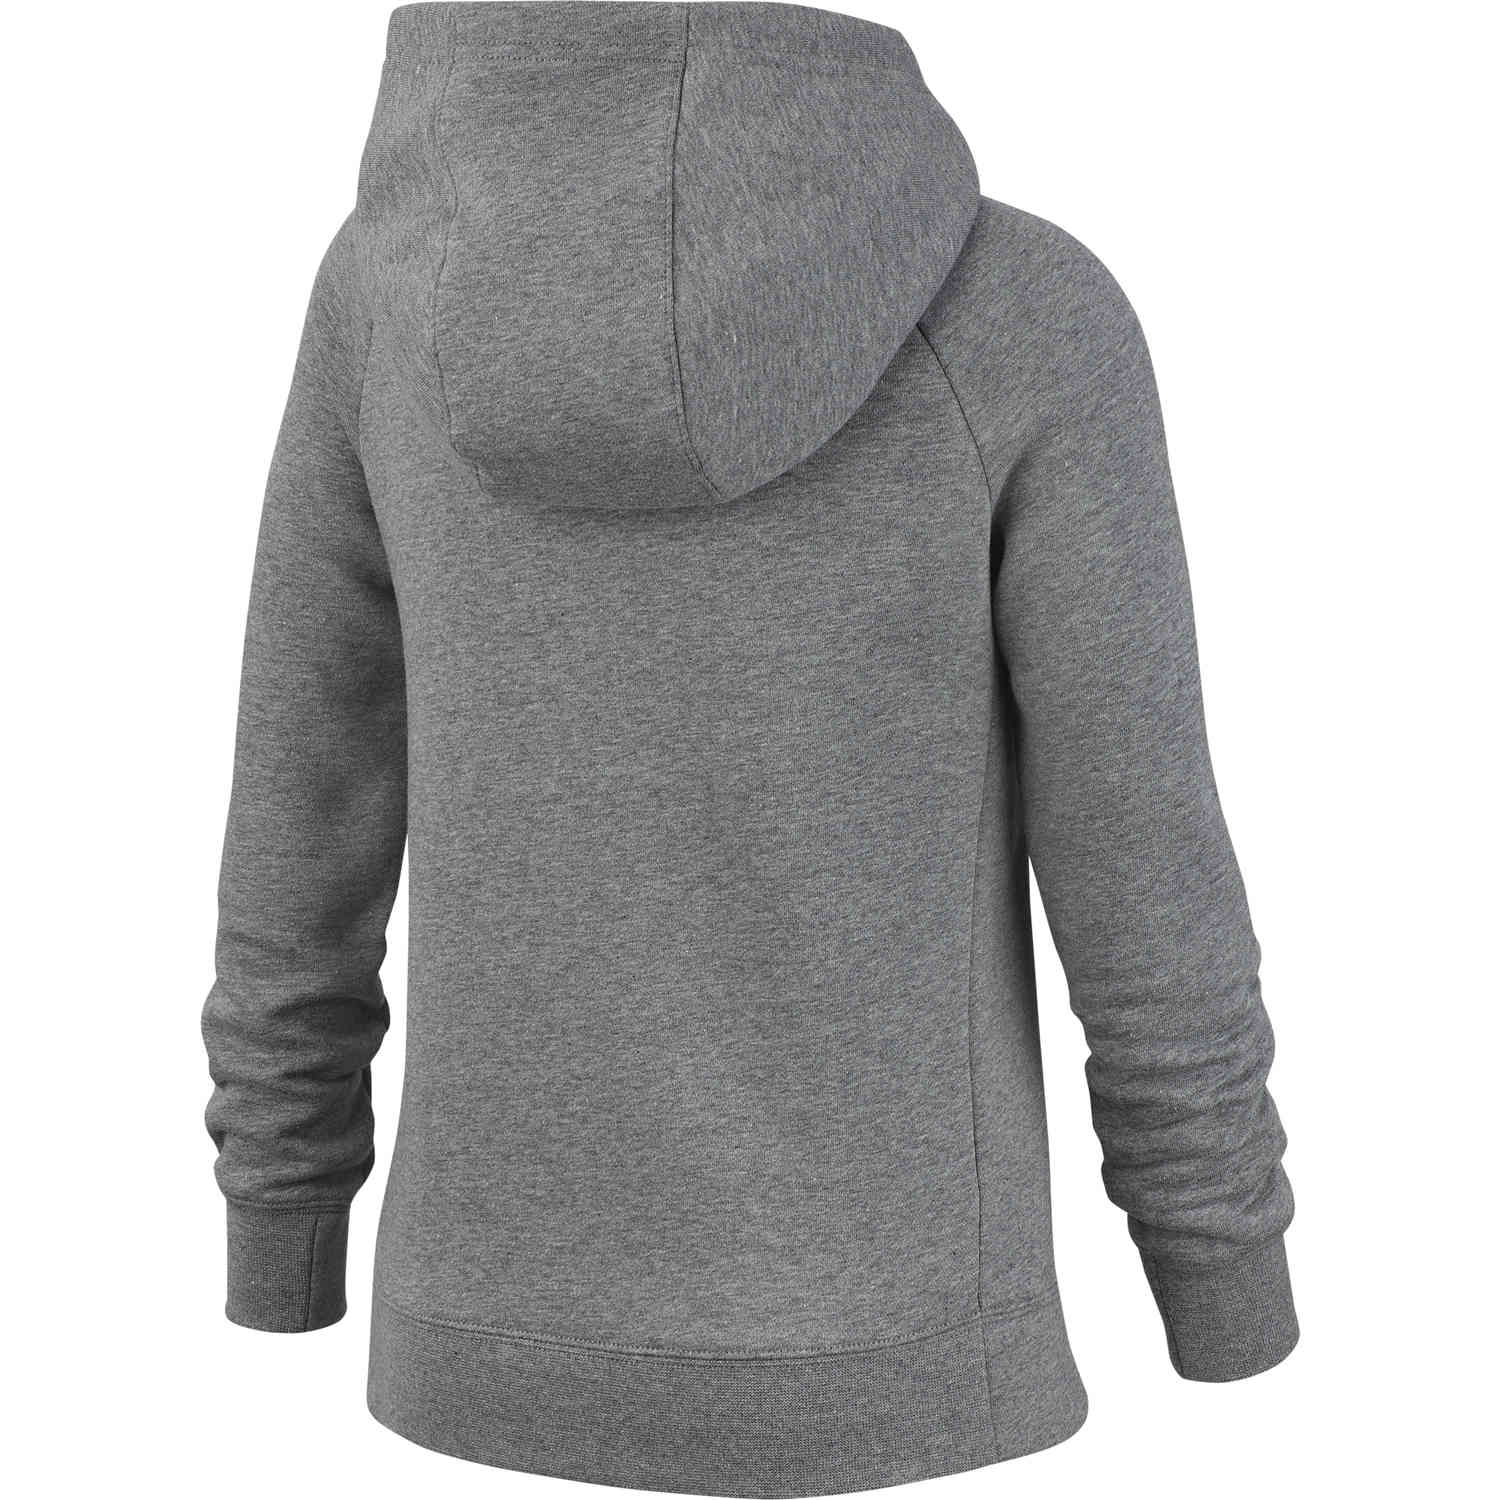 Nike Hoodie Carbon Heather Girls Nike Fleece Full Zip Hoodie Carbon Heather Soccerpro